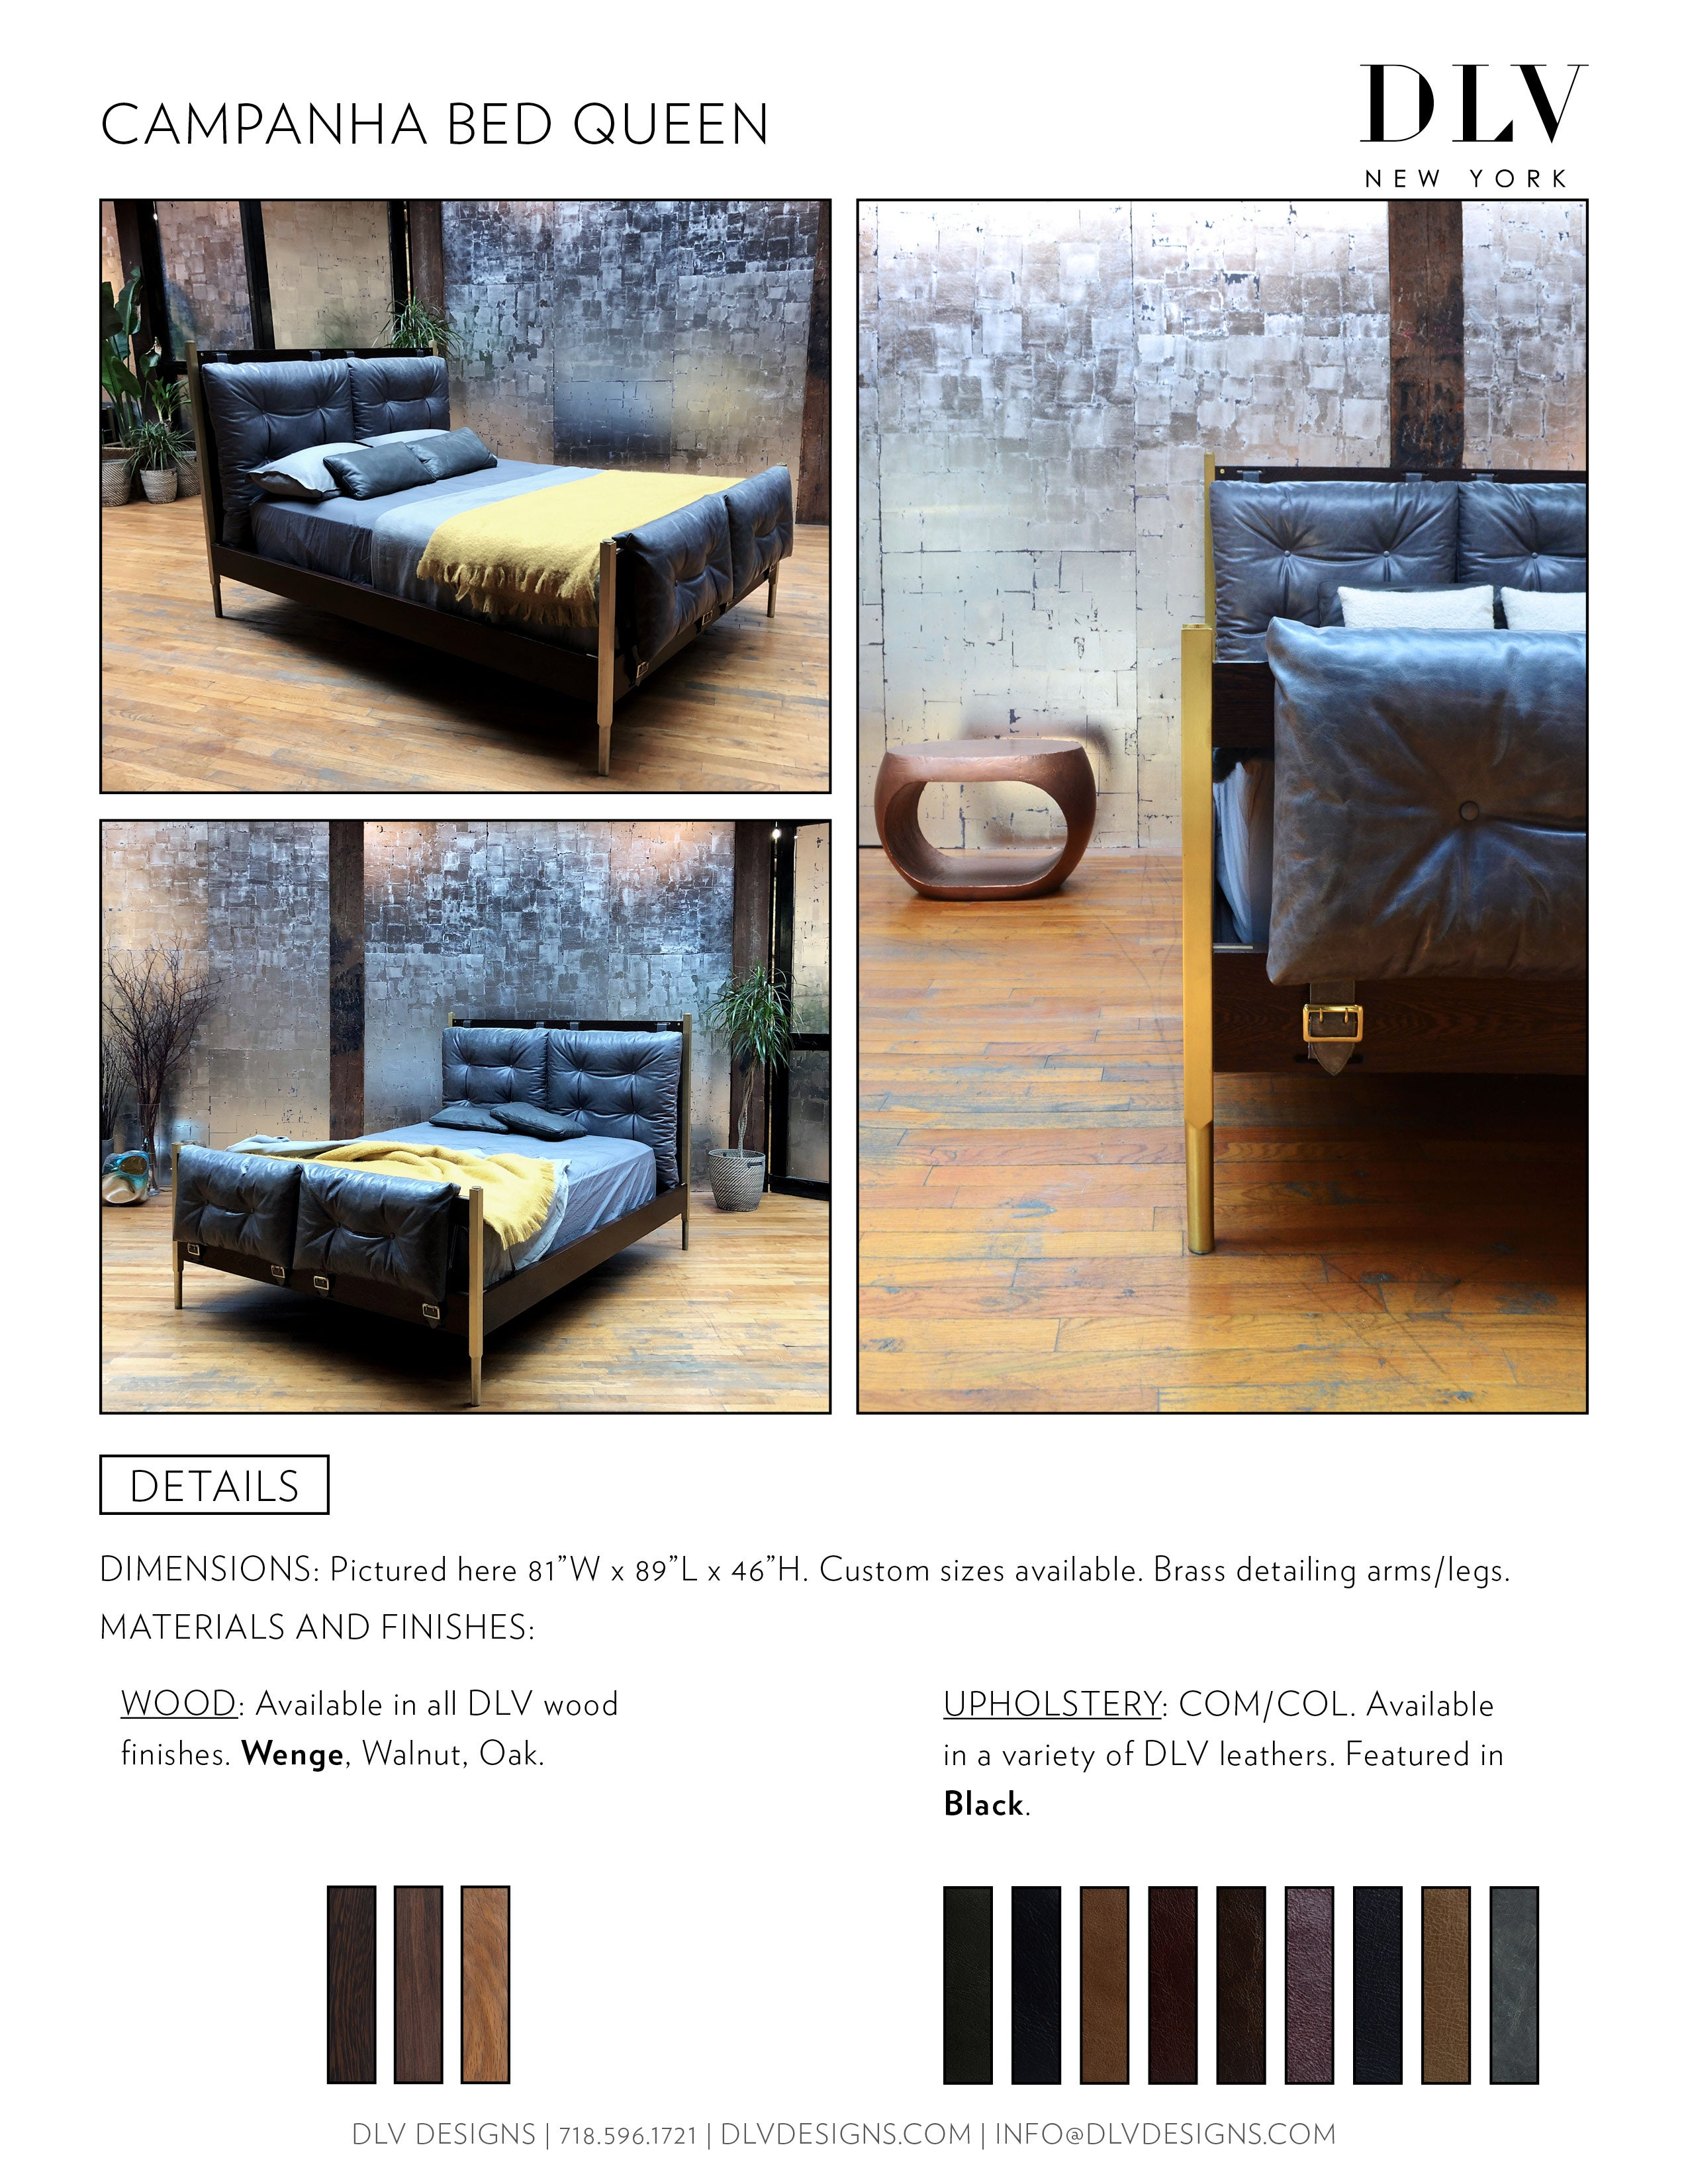 Campanha Bed Frame Tufted Leather Head And Footboard Brass Legs